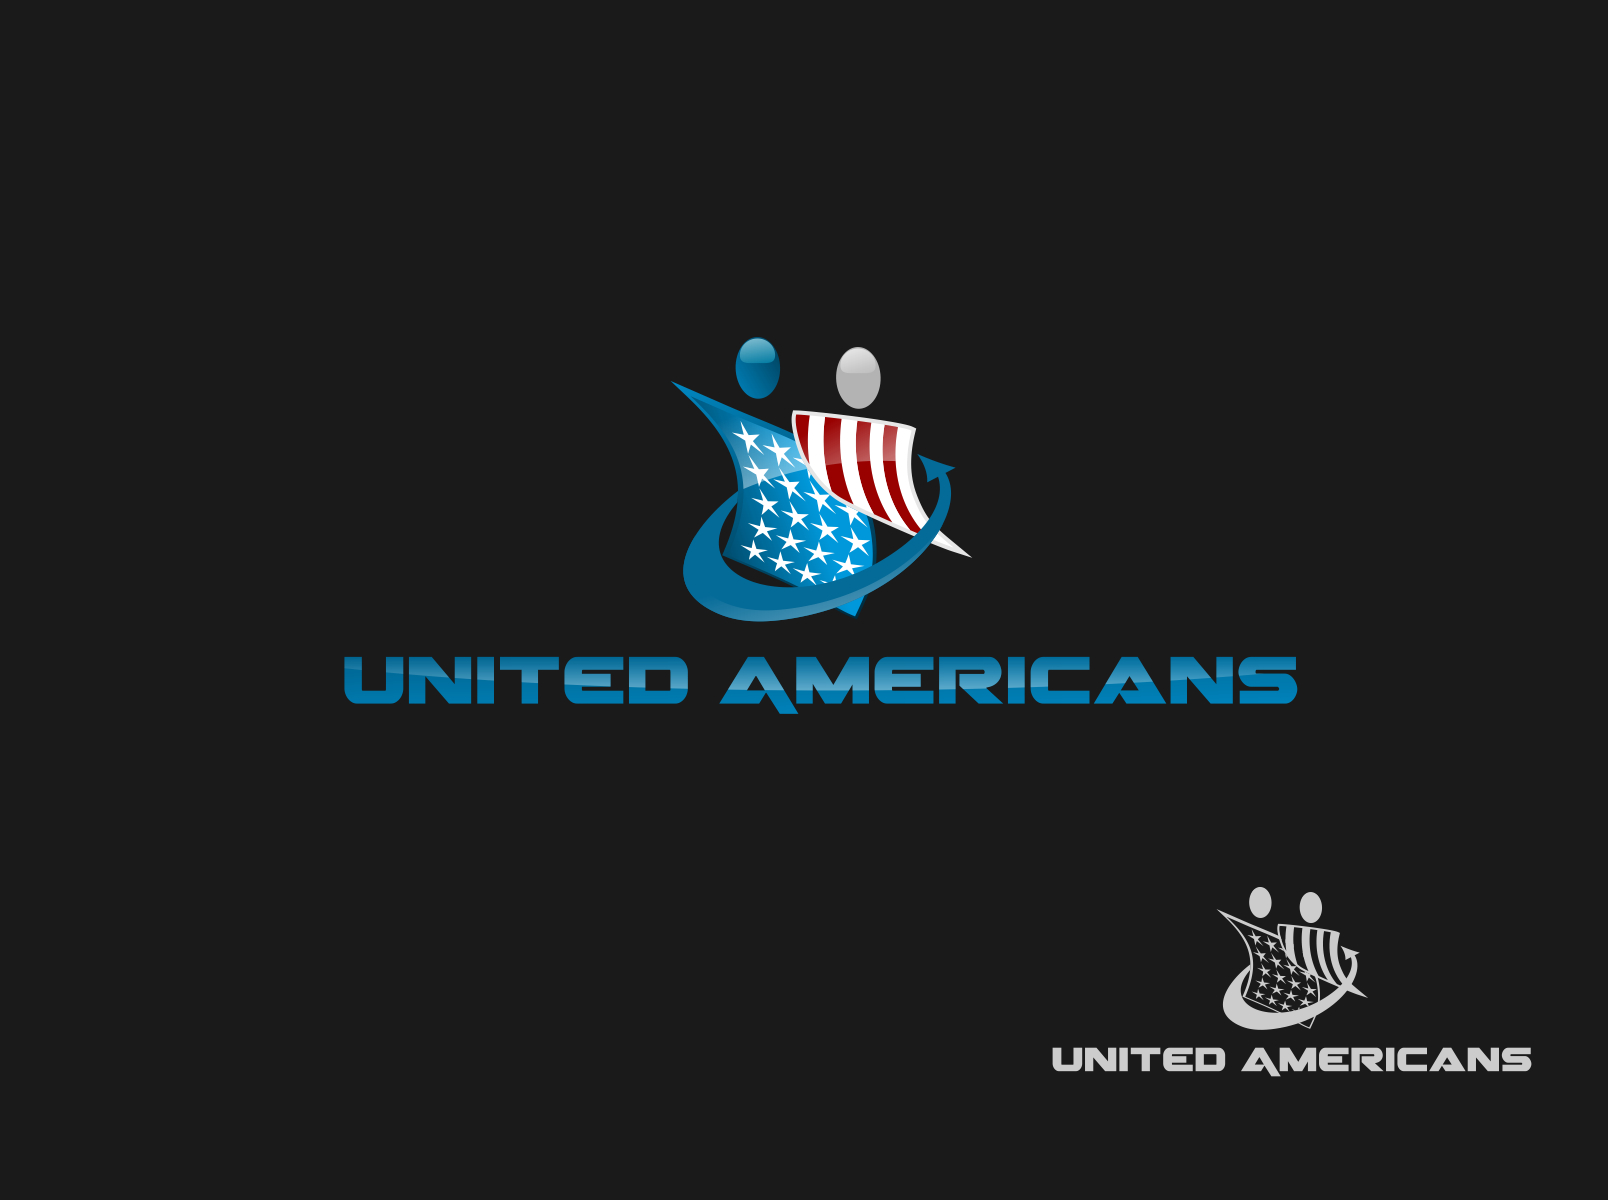 Logo Design by Chris Frederickson - Entry No. 24 in the Logo Design Contest Creative Logo Design for United Americans.